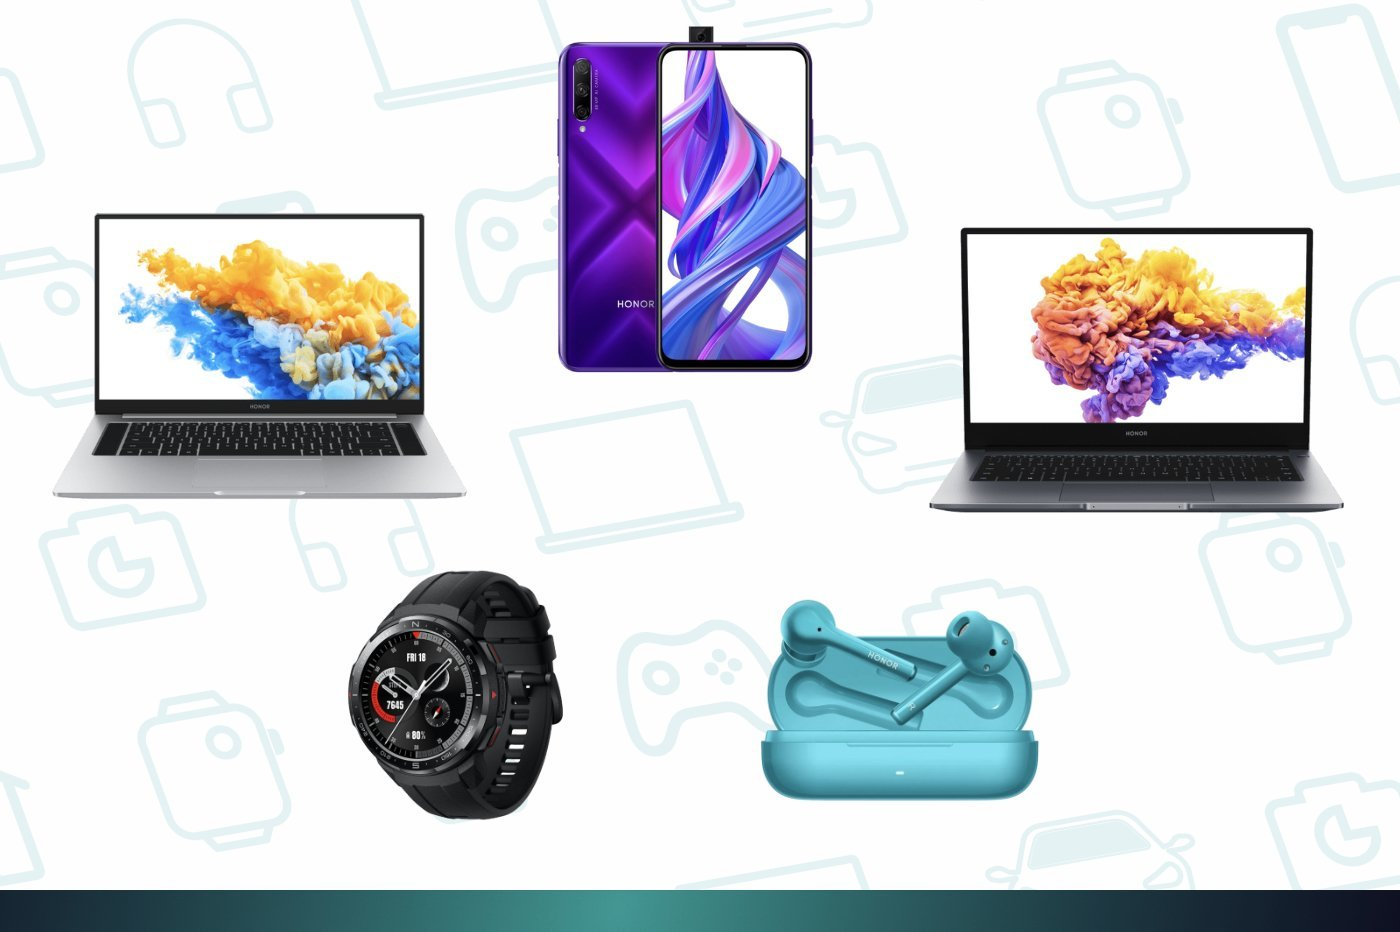 Honor Days : voici les bonnes affaires à réaliser sur les MagicBook, Honor 9X Pro ou Watch GS Pro